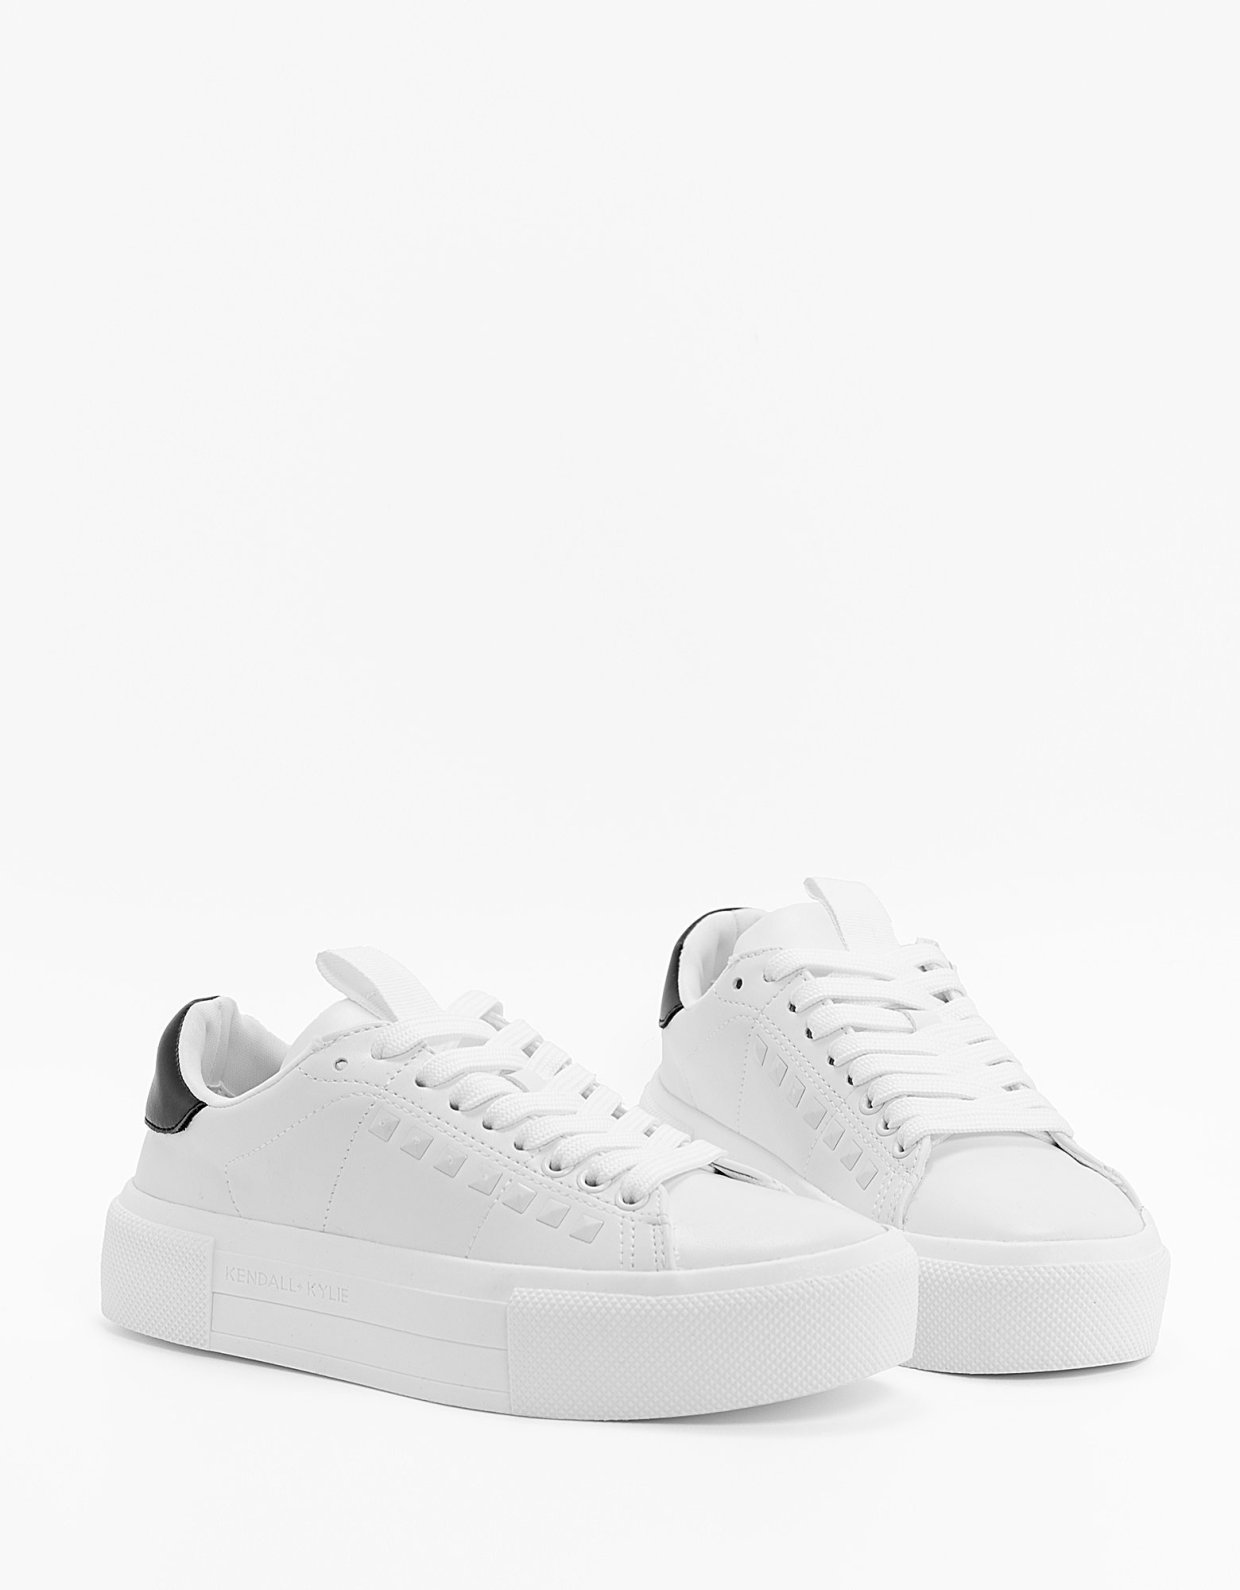 Kendall + Kylie Taren shoes white